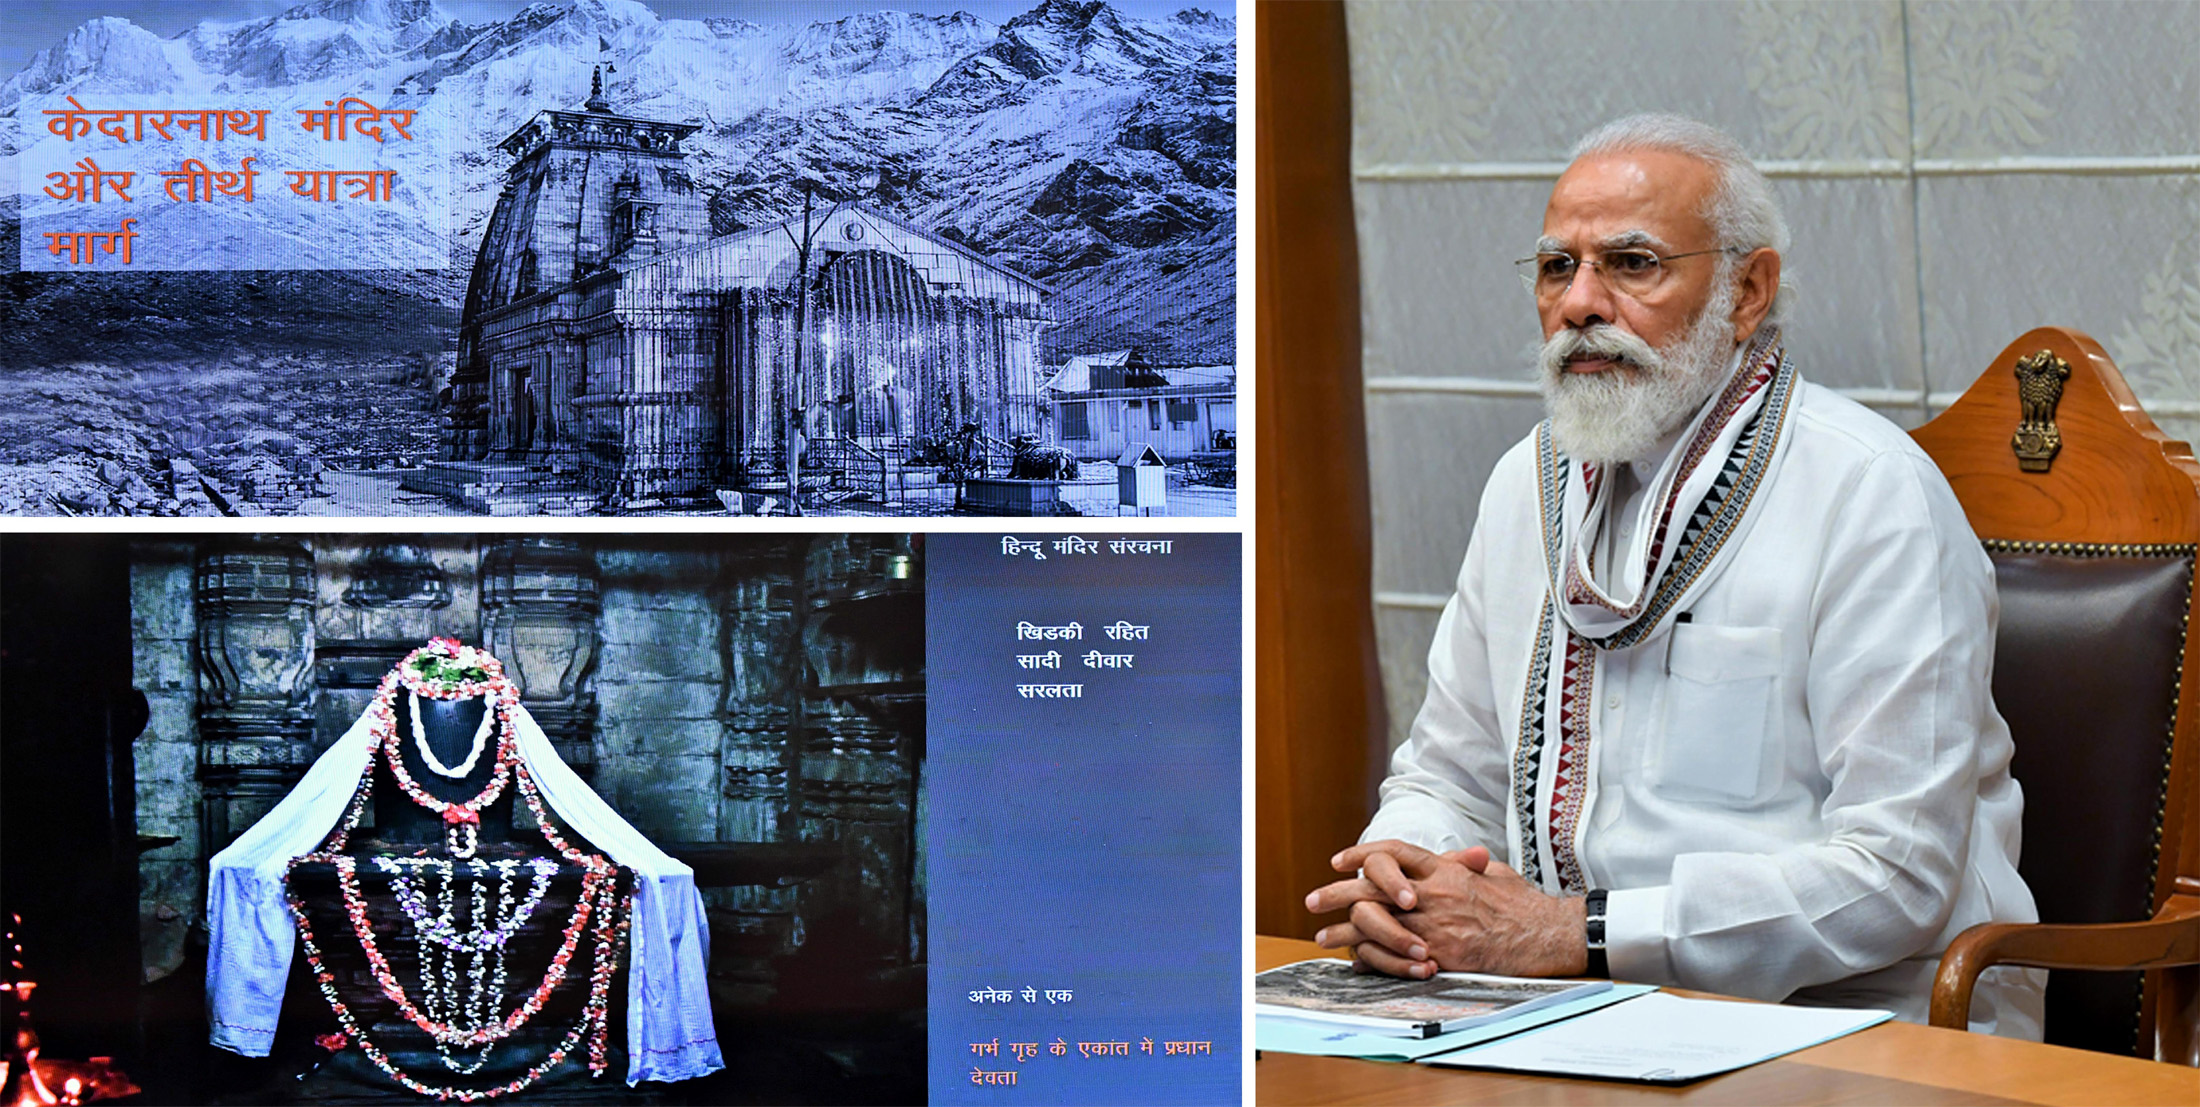 The Prime Minister, Shri Narendra Modi reviews the development work at Kedarnath Dham through Video Conferencing, in New Delhi. on July 15, 2020.